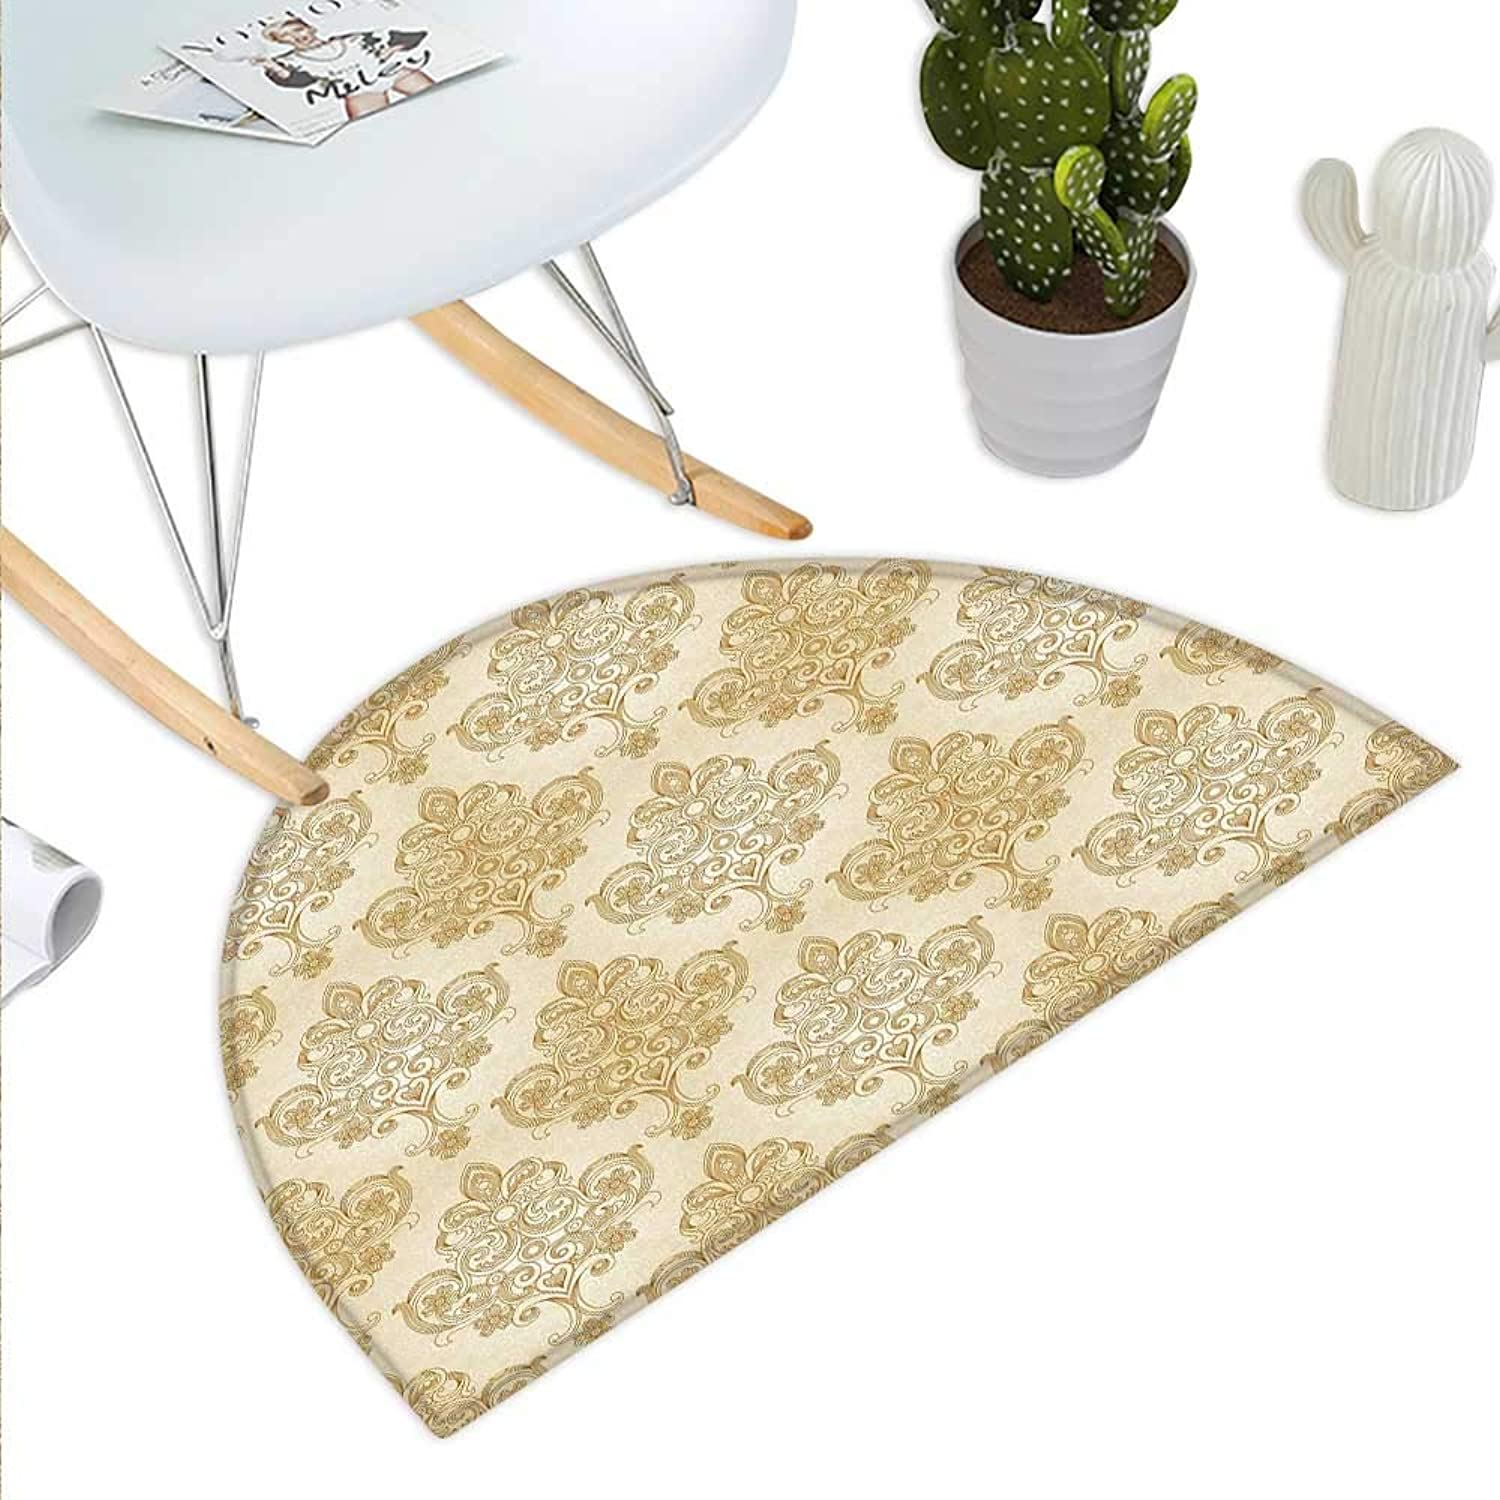 Ivory Semicircle Doormat Vintage Baroque Pattern with Curved Flower Lines Rococo Style Ornate Artwork Halfmoon doormats H 35.4  xD 53.1  Cream Pale Brown